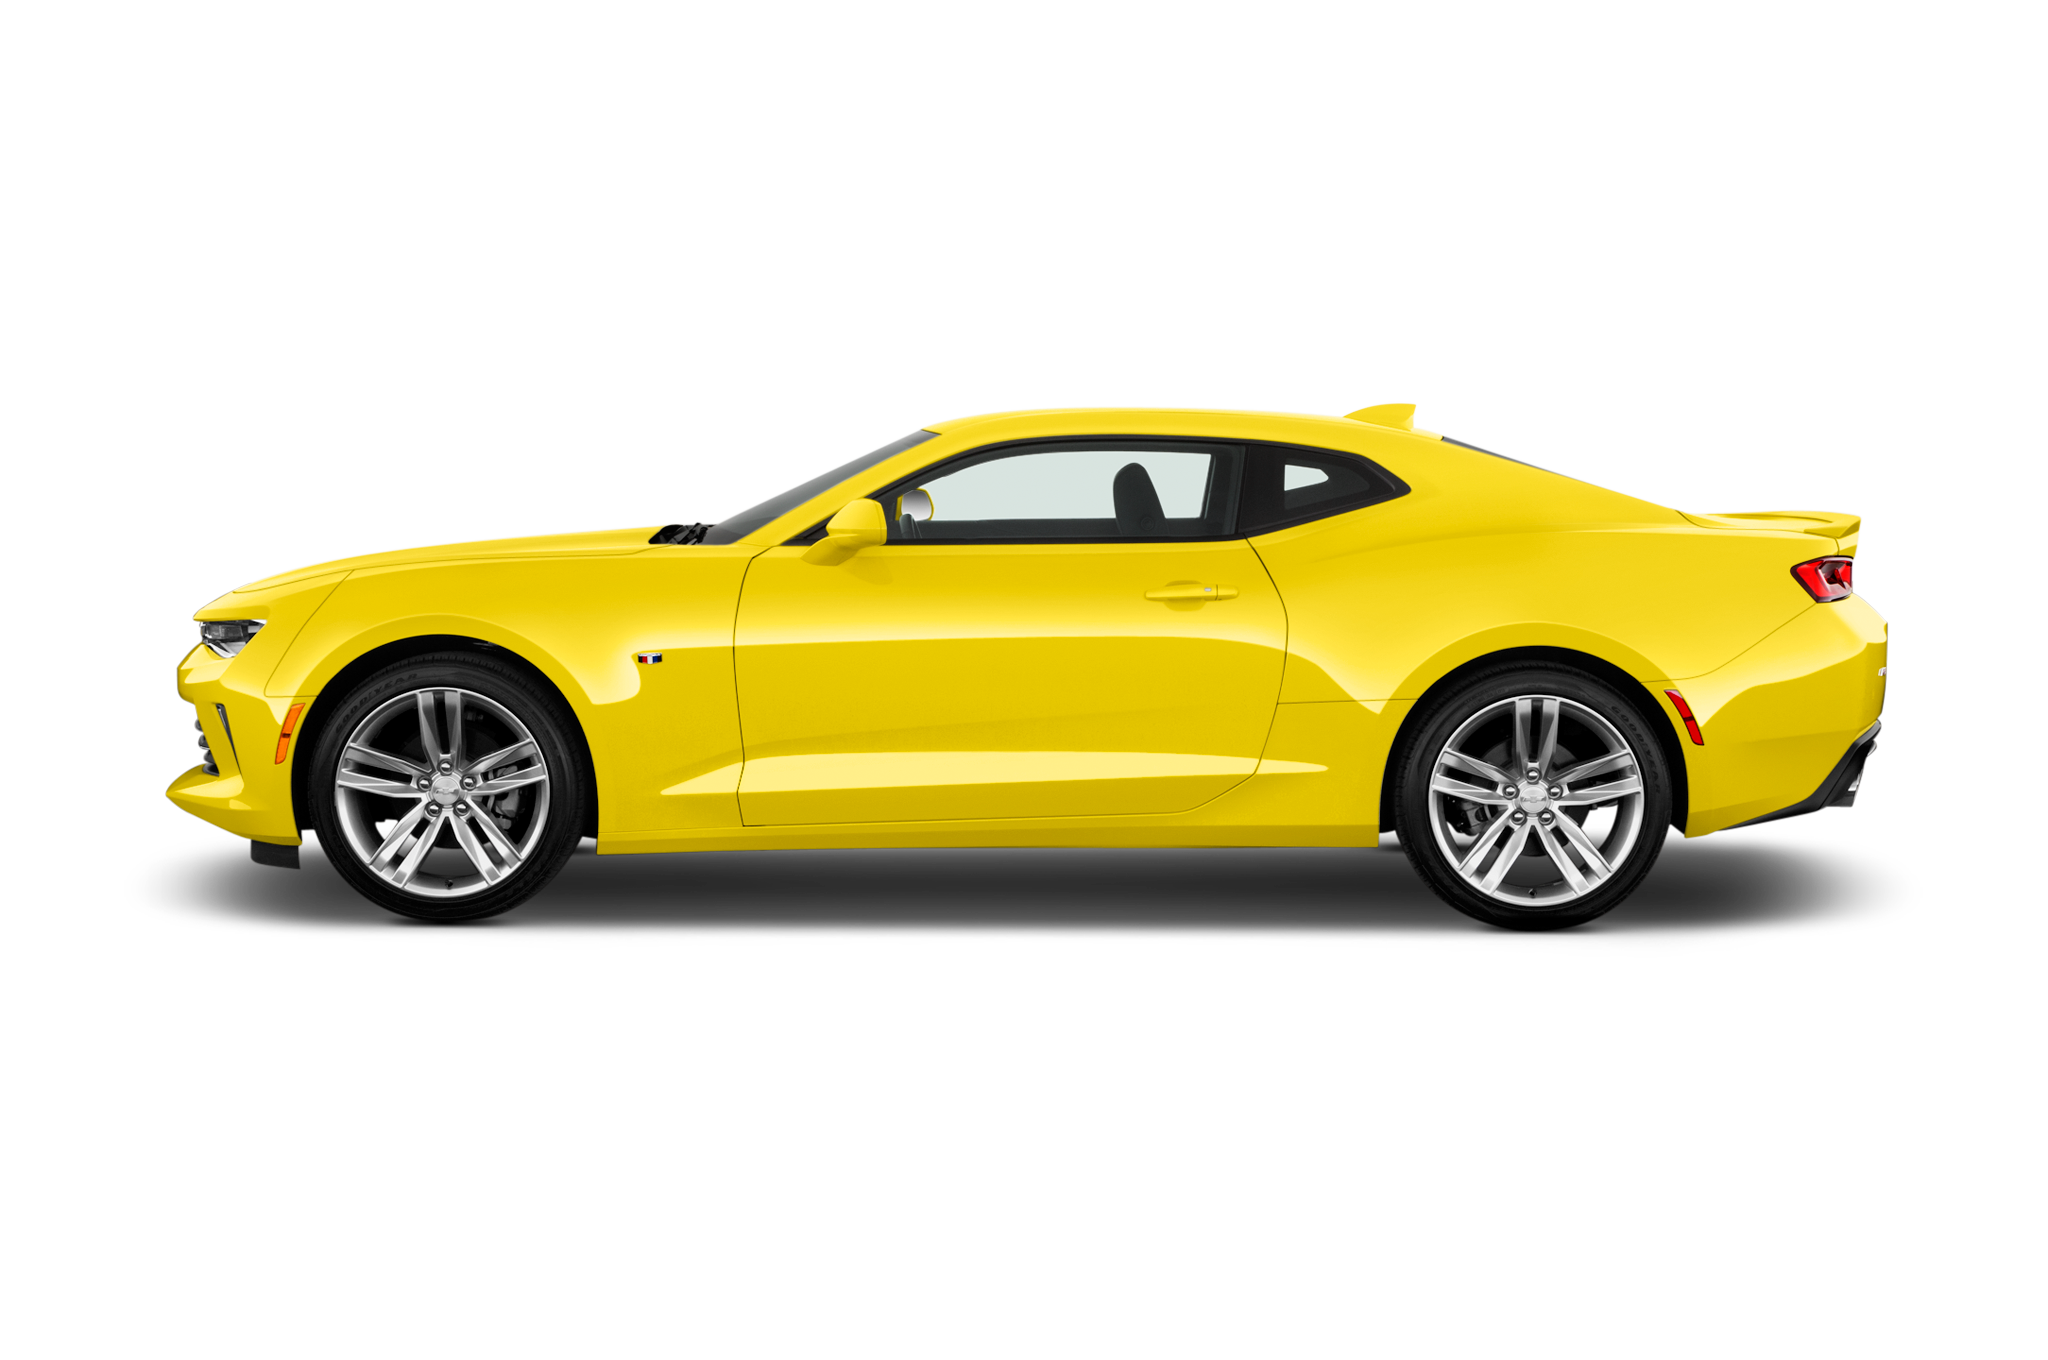 Chevrolet clipart yellow car Bumblebee Chevrolet Car images in